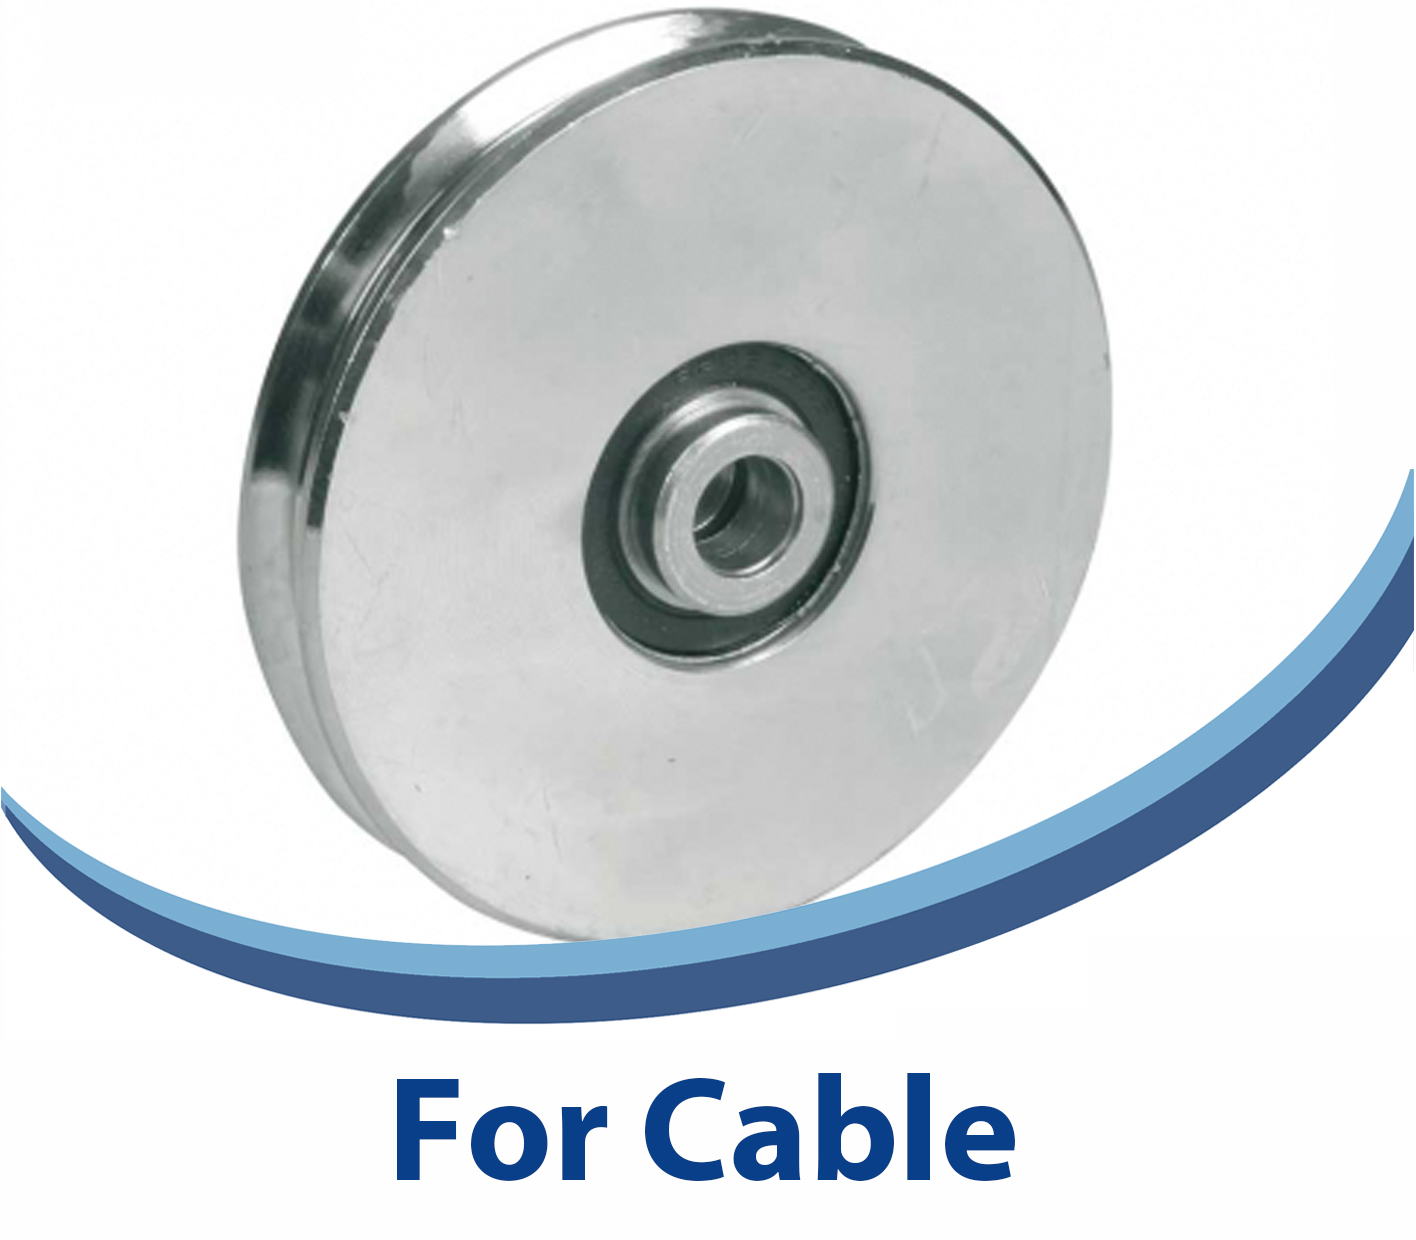 For Cable